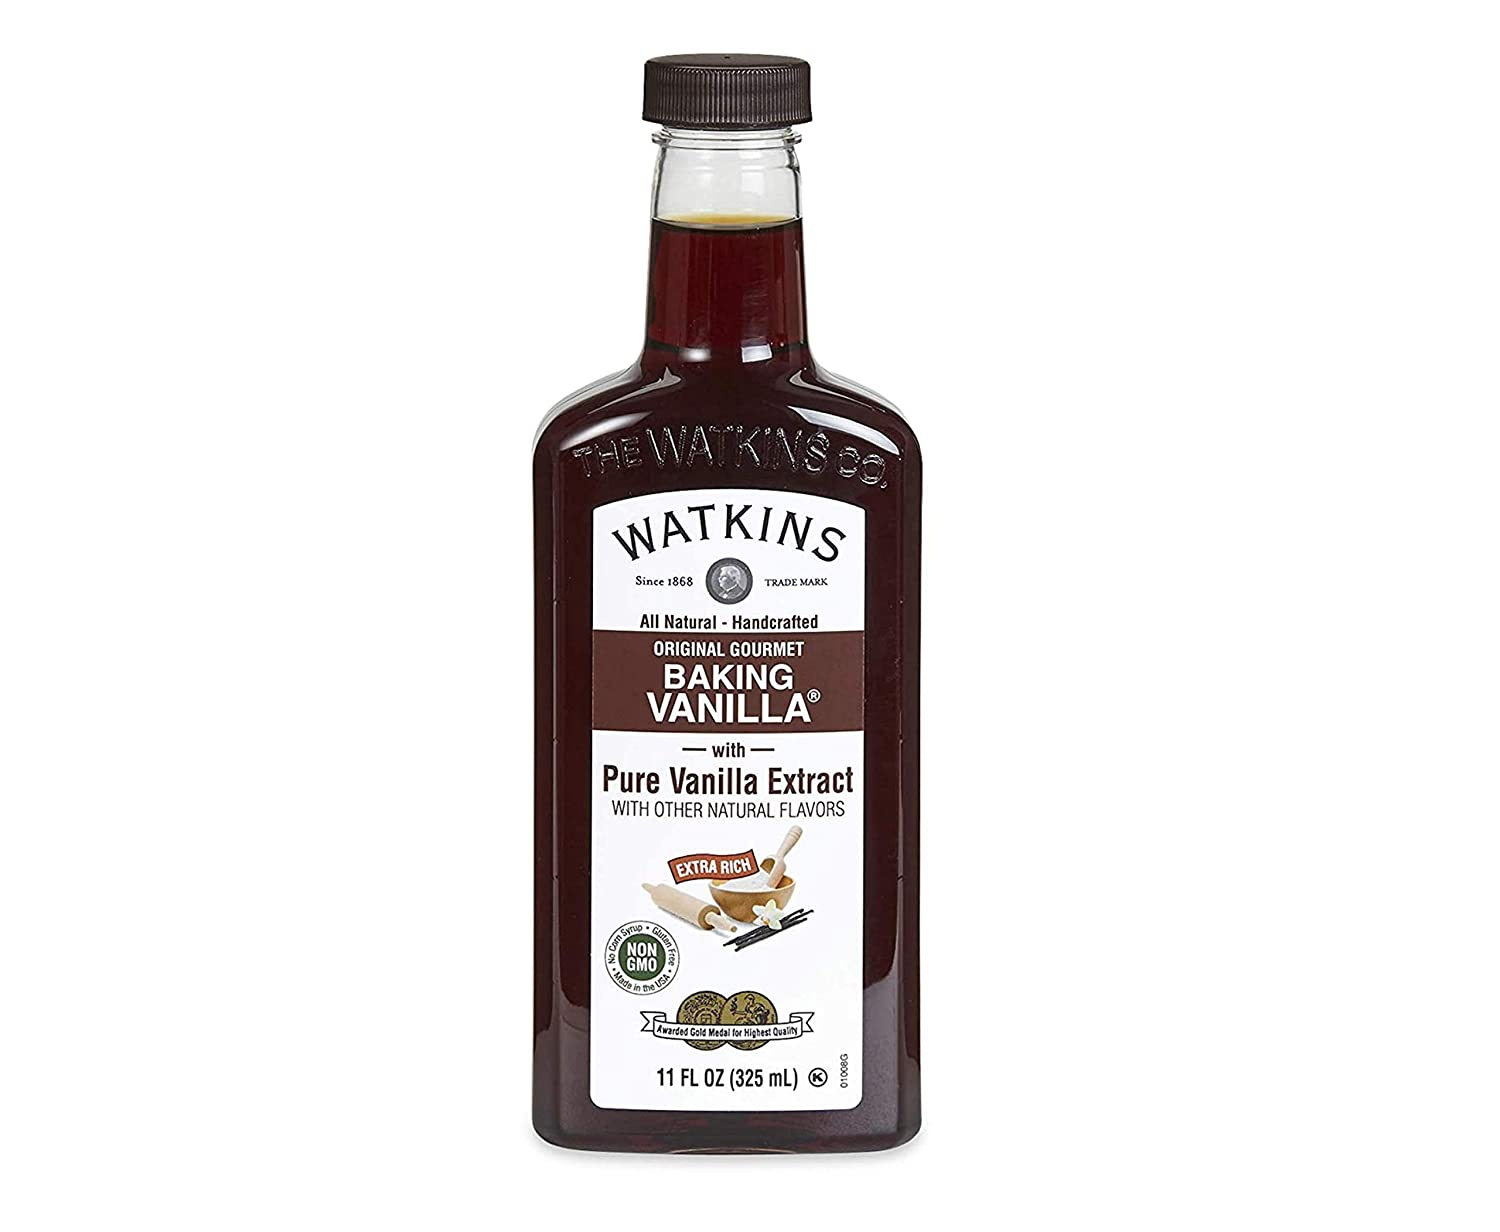 Watkins All Natural Original Gourmet Baking Vanilla, with Pure Vanilla Extract, 11 ounces Bottle,